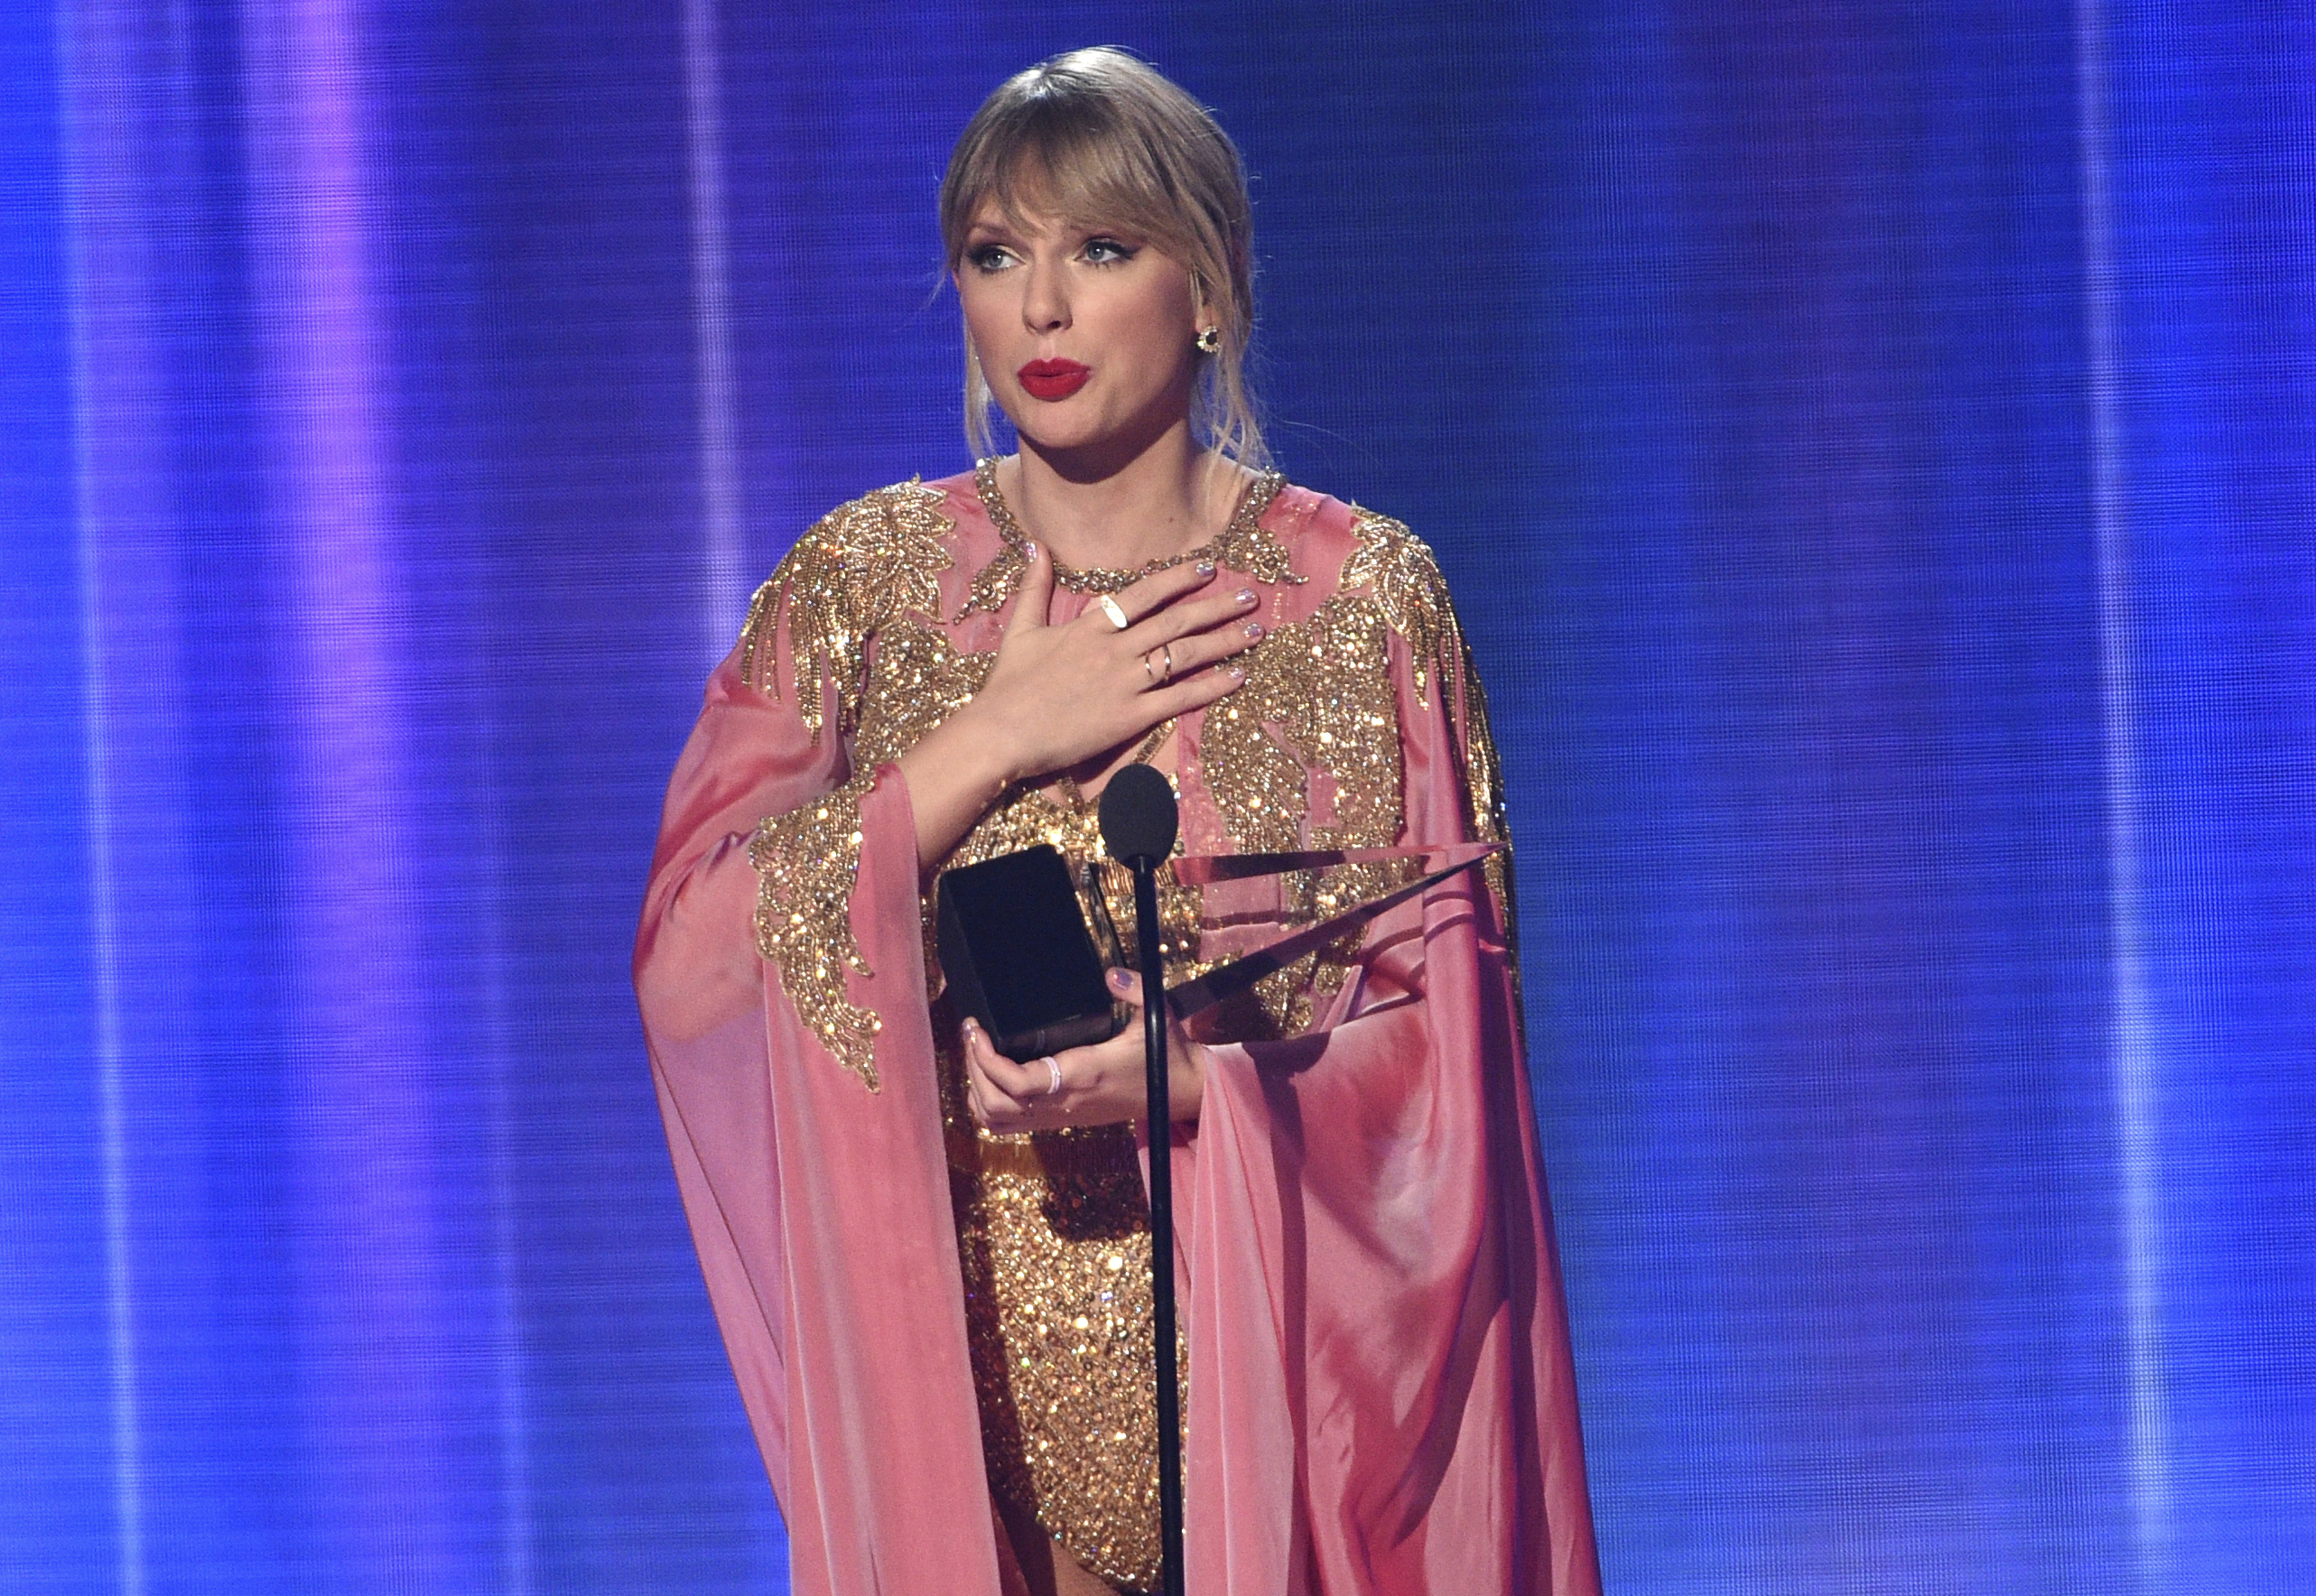 Taylor Swift 2019 American Music Awards - Show